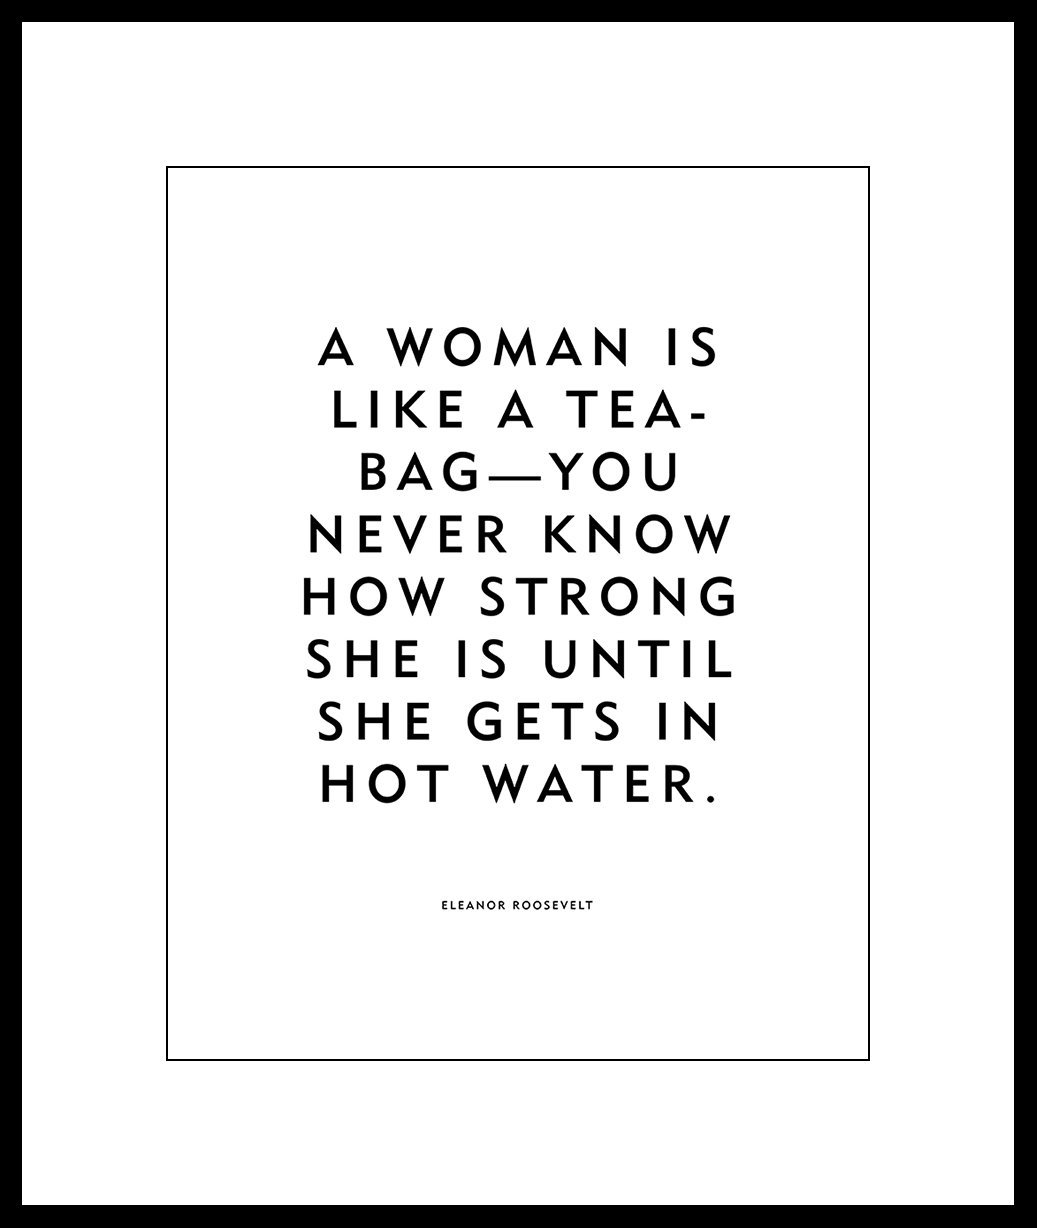 Amazon Eleanor Roosevelt Quote Poster Or Print A Woman Is Like